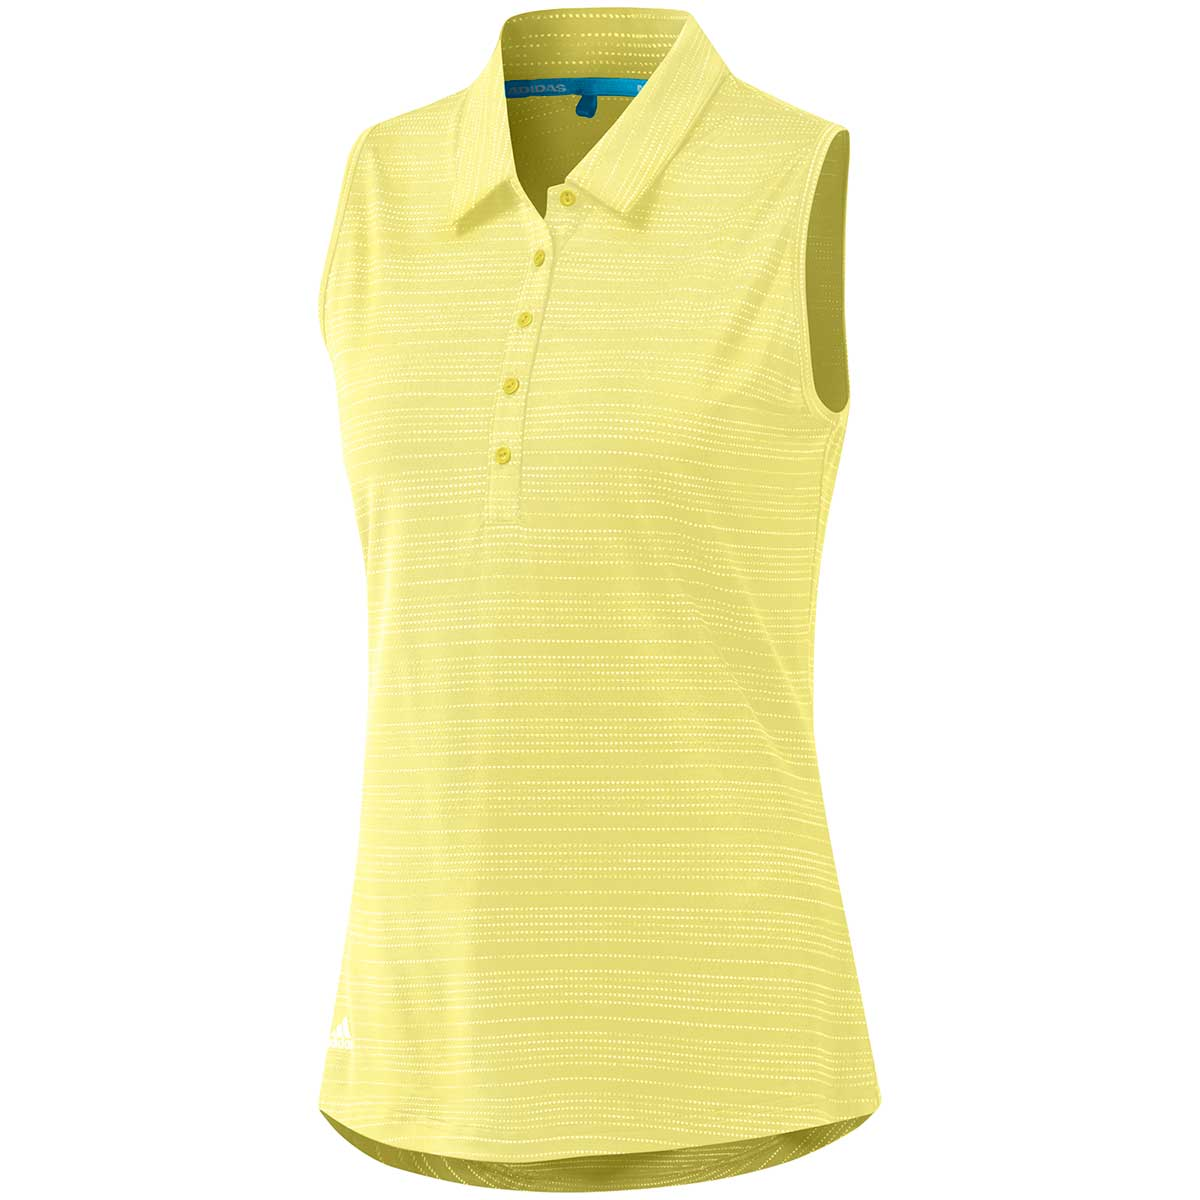 Adidas Women's Microdot Sleeveless Polo Shirt - Yellow